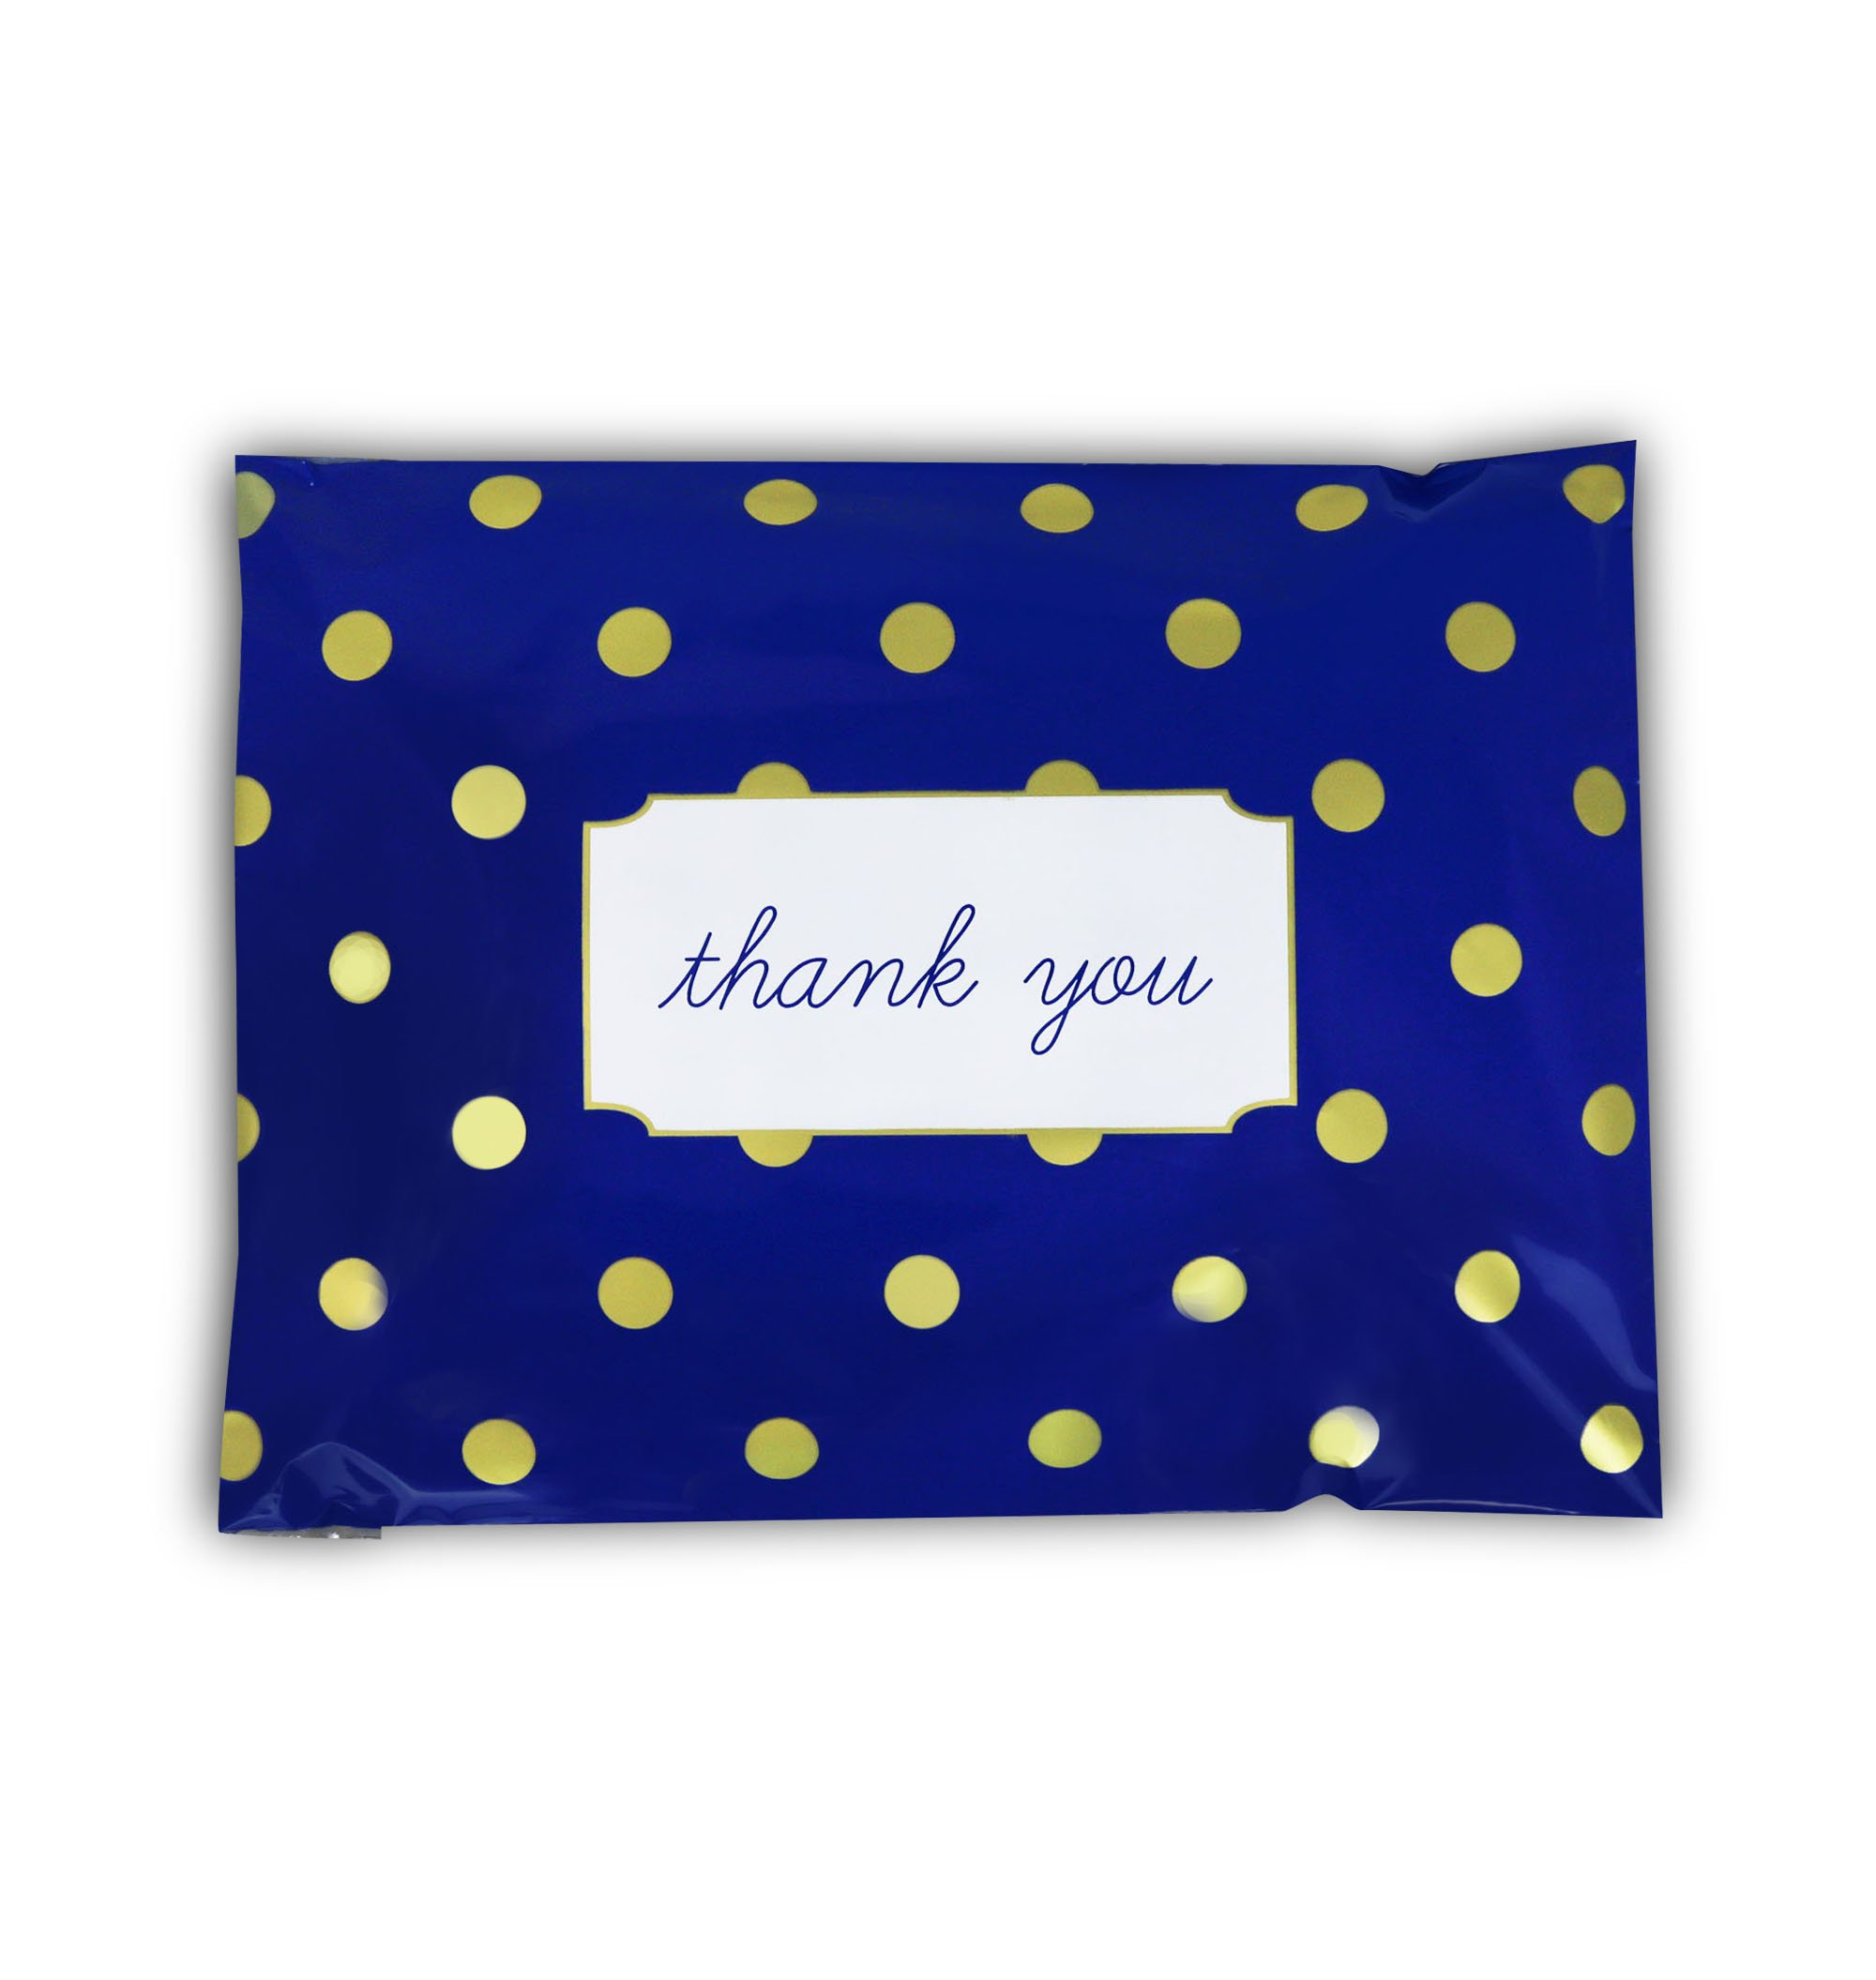 "[ 100-10"" X 13"" ] Navy Polka Dot - Thank You Design Custom Poly Mailer Envelope Shipping Bags, Tear Proof & Powerful Self Seal Adhesive Postal Bags (Other Designs Available) - Pack It Chic by Pack It Chic (Image #2)"